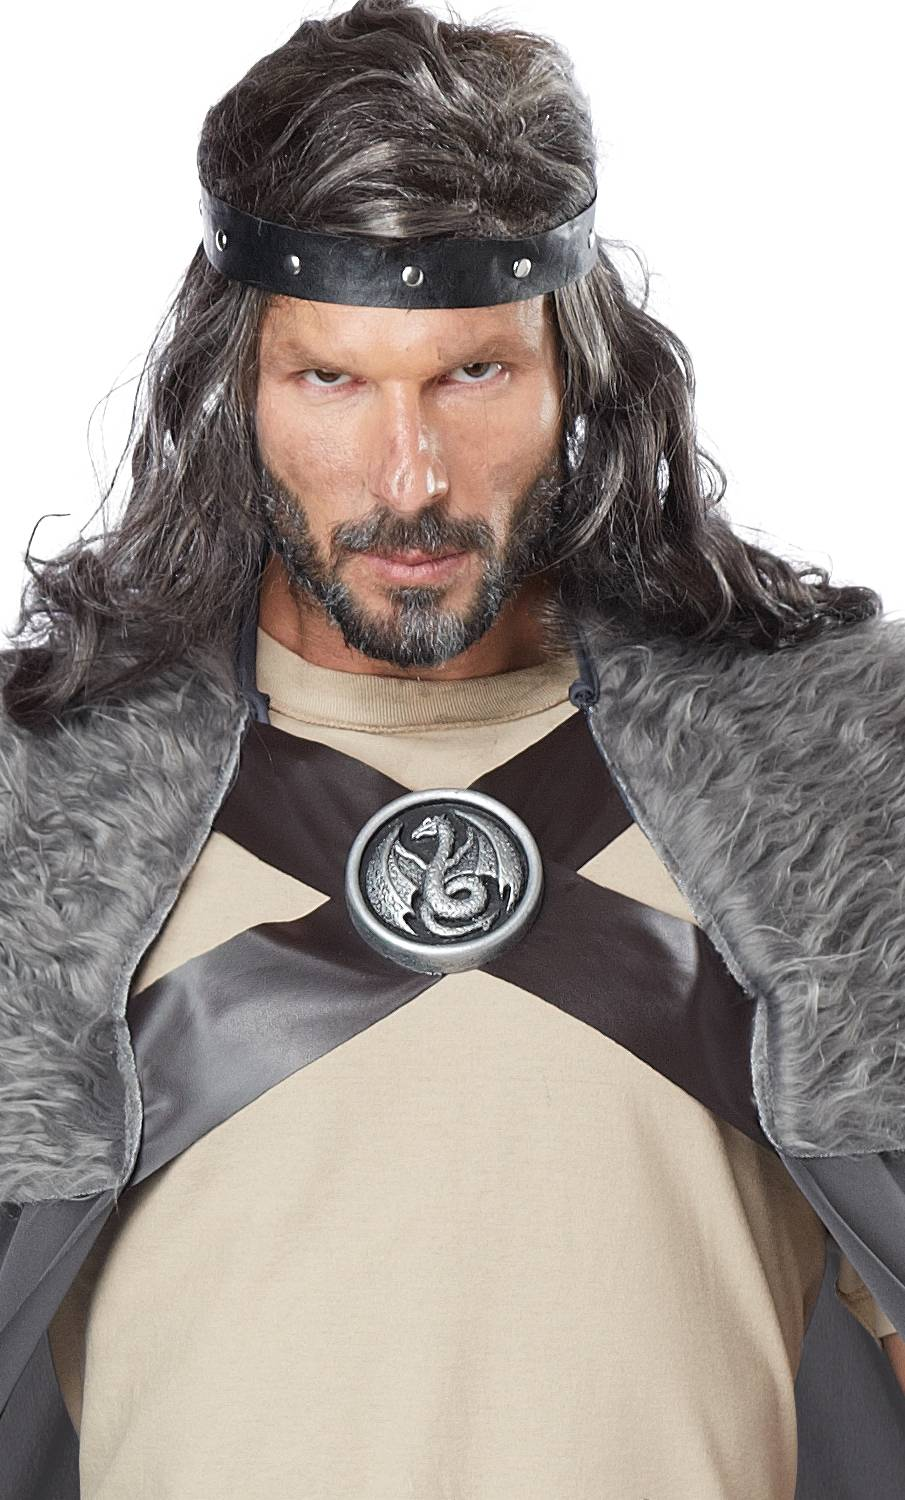 Costume-Cape-Viking-2